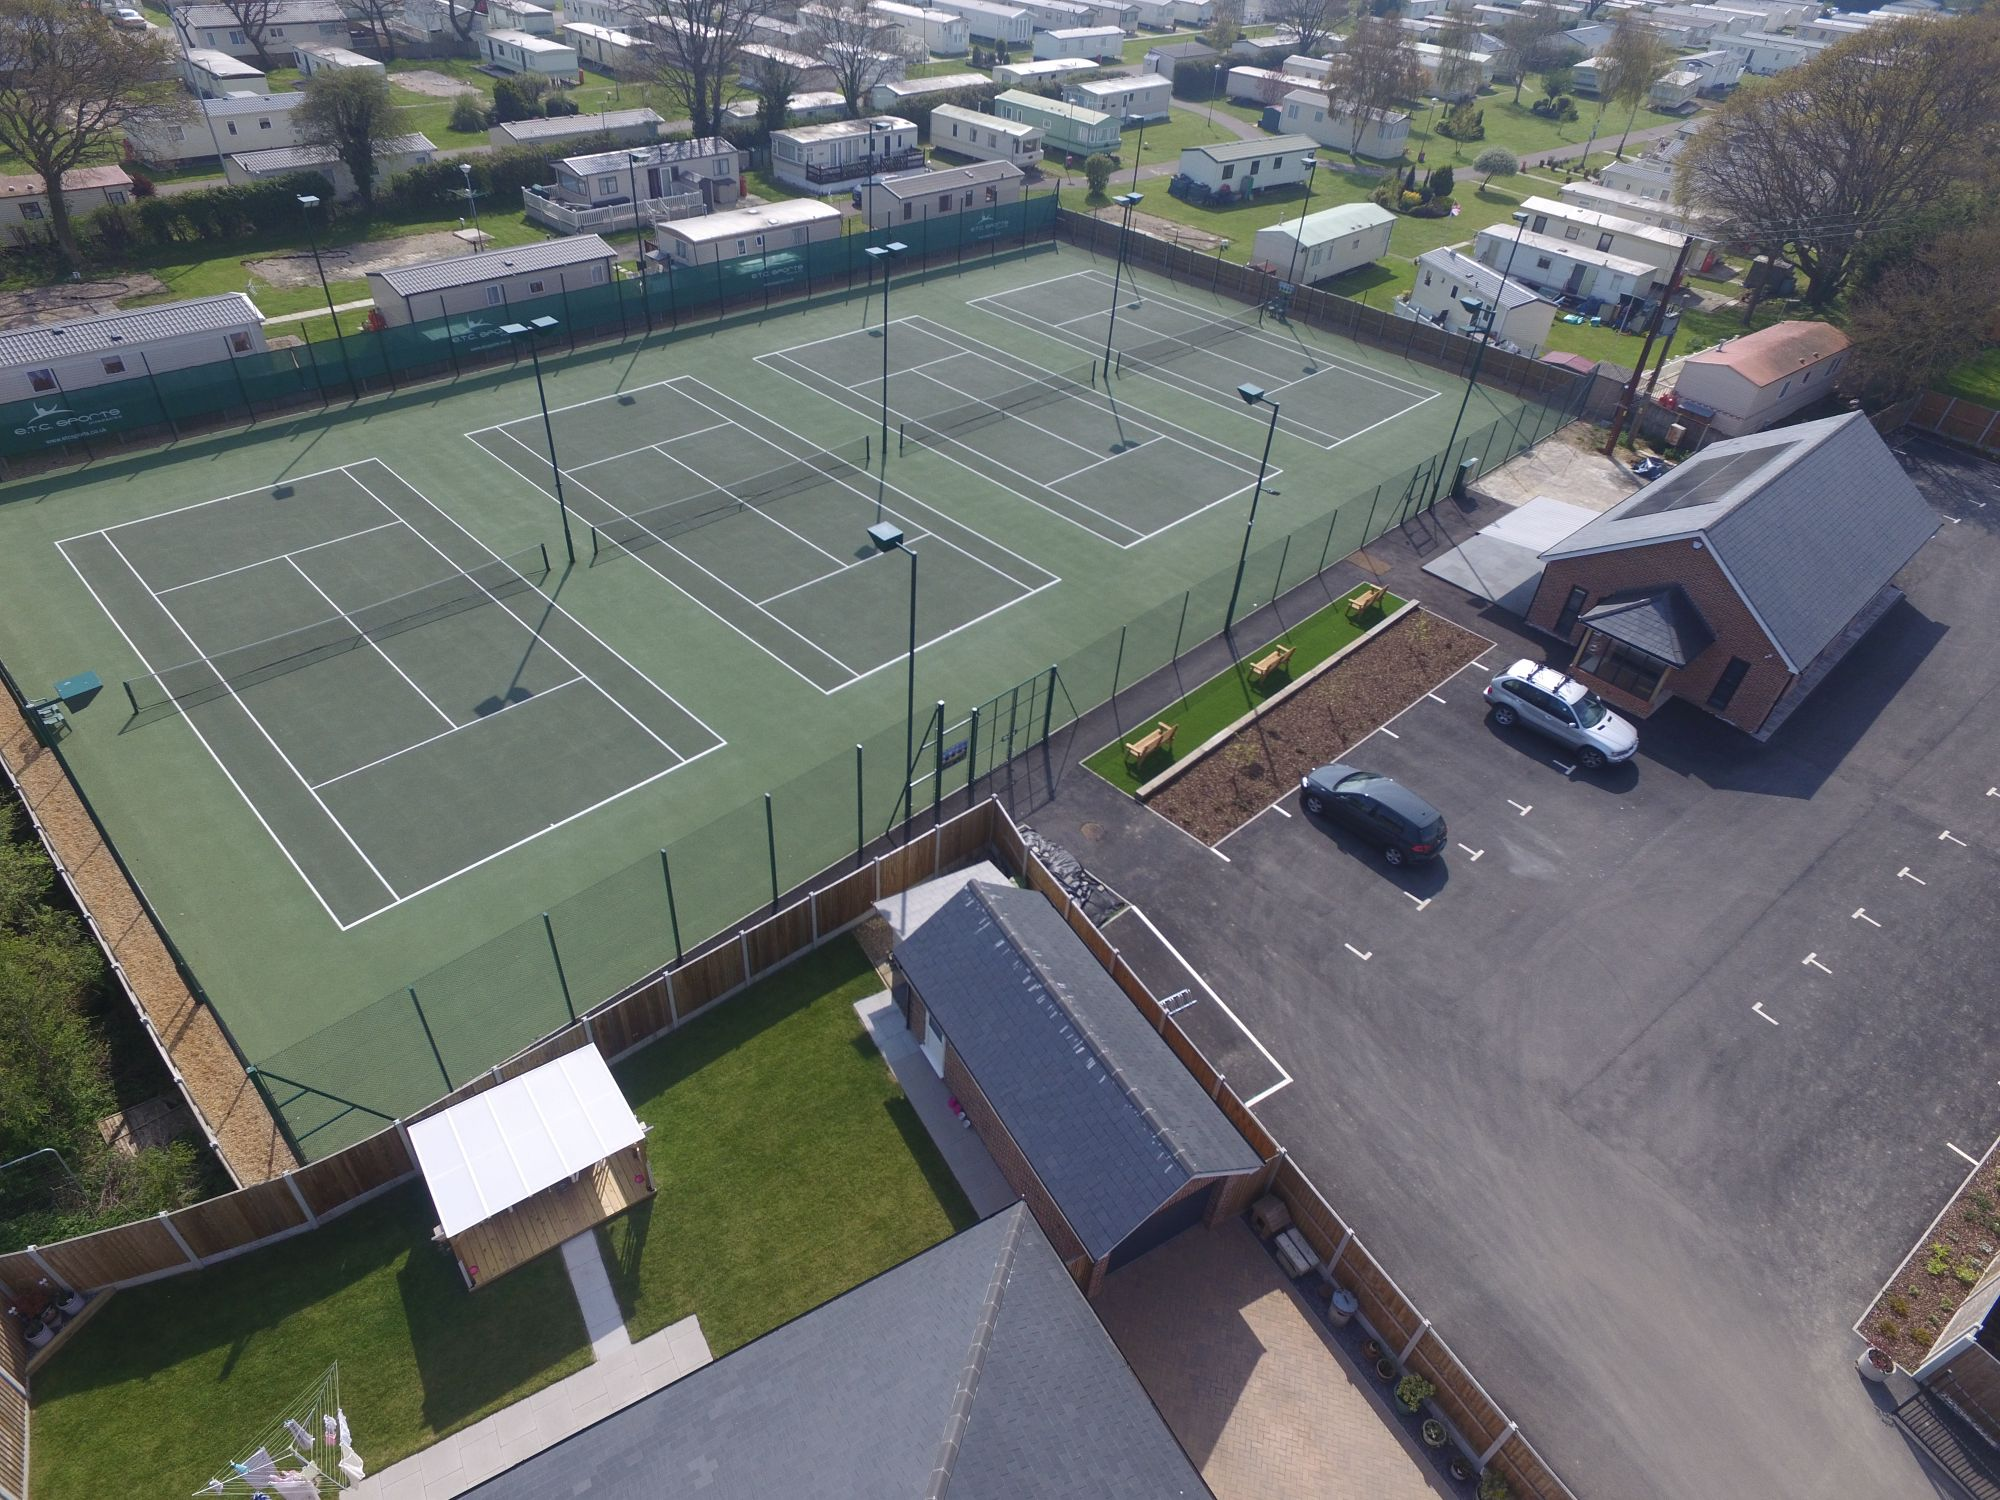 ETC Sports Surfaces worked closely with SAPCA and the LTA to ensure that these hard tennis courts comply with the highest industry specifications